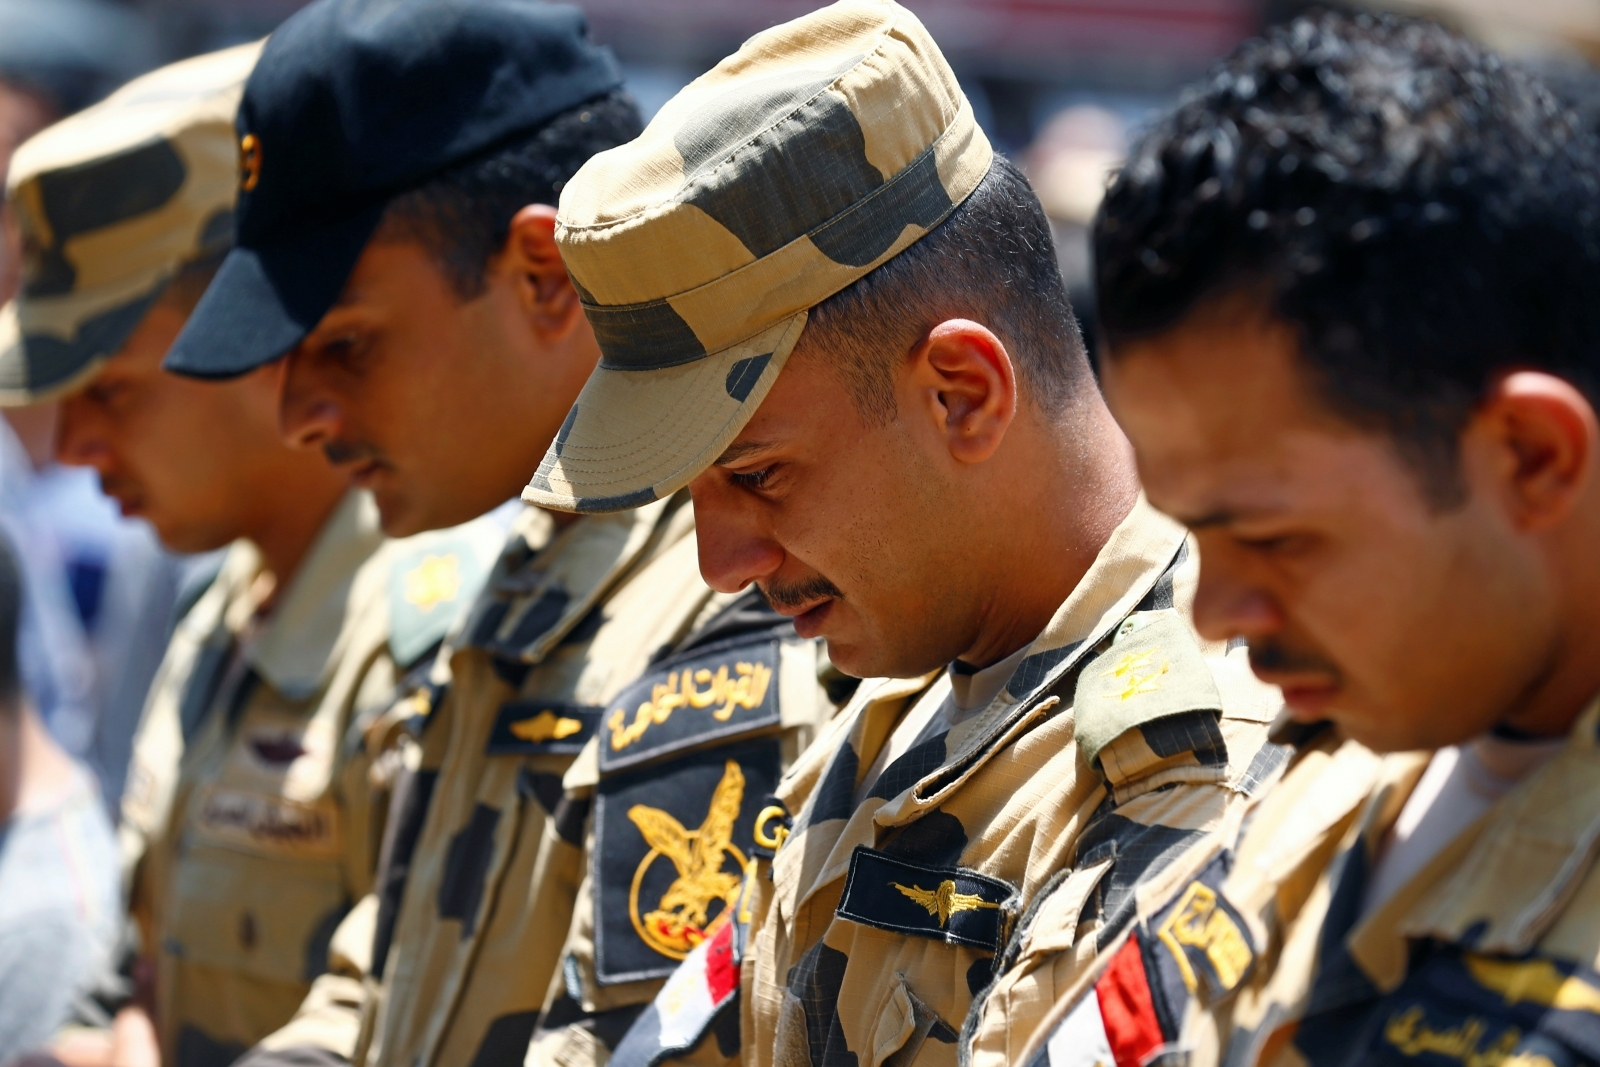 Militants kill 18 police forces in Egypt's Sinai Peninsula